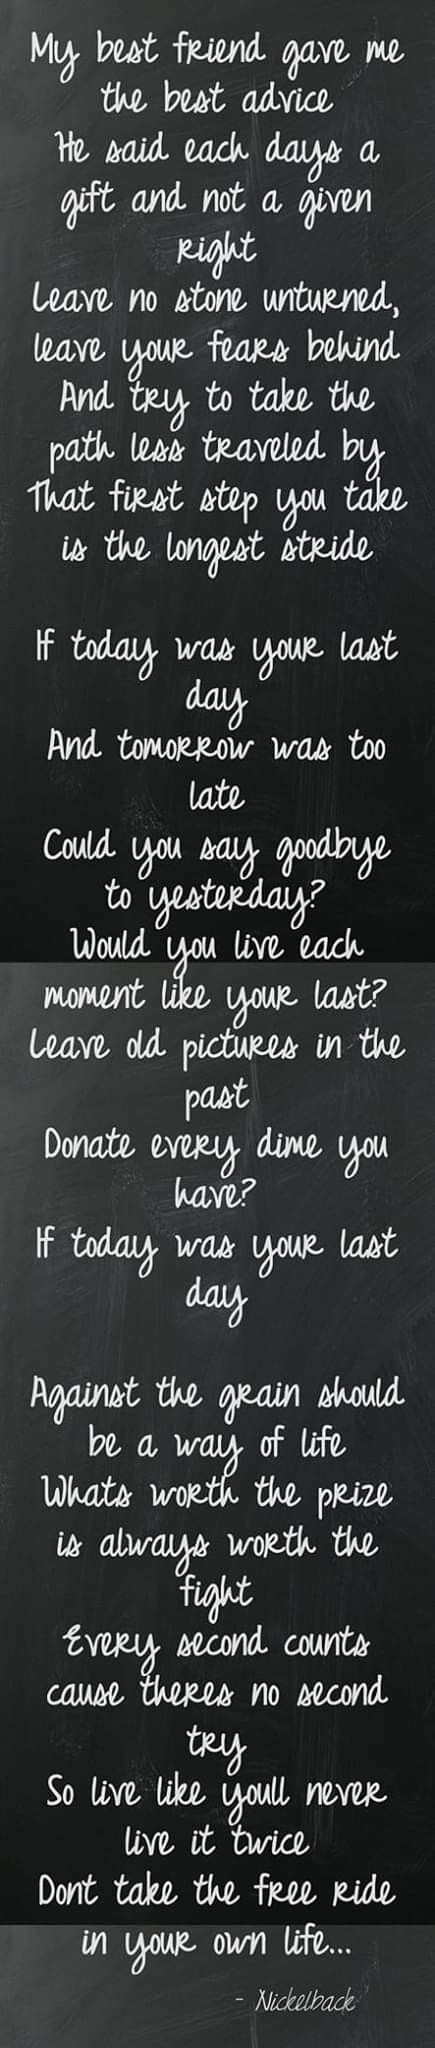 Pin by Clare Phillips on nickelback (With images